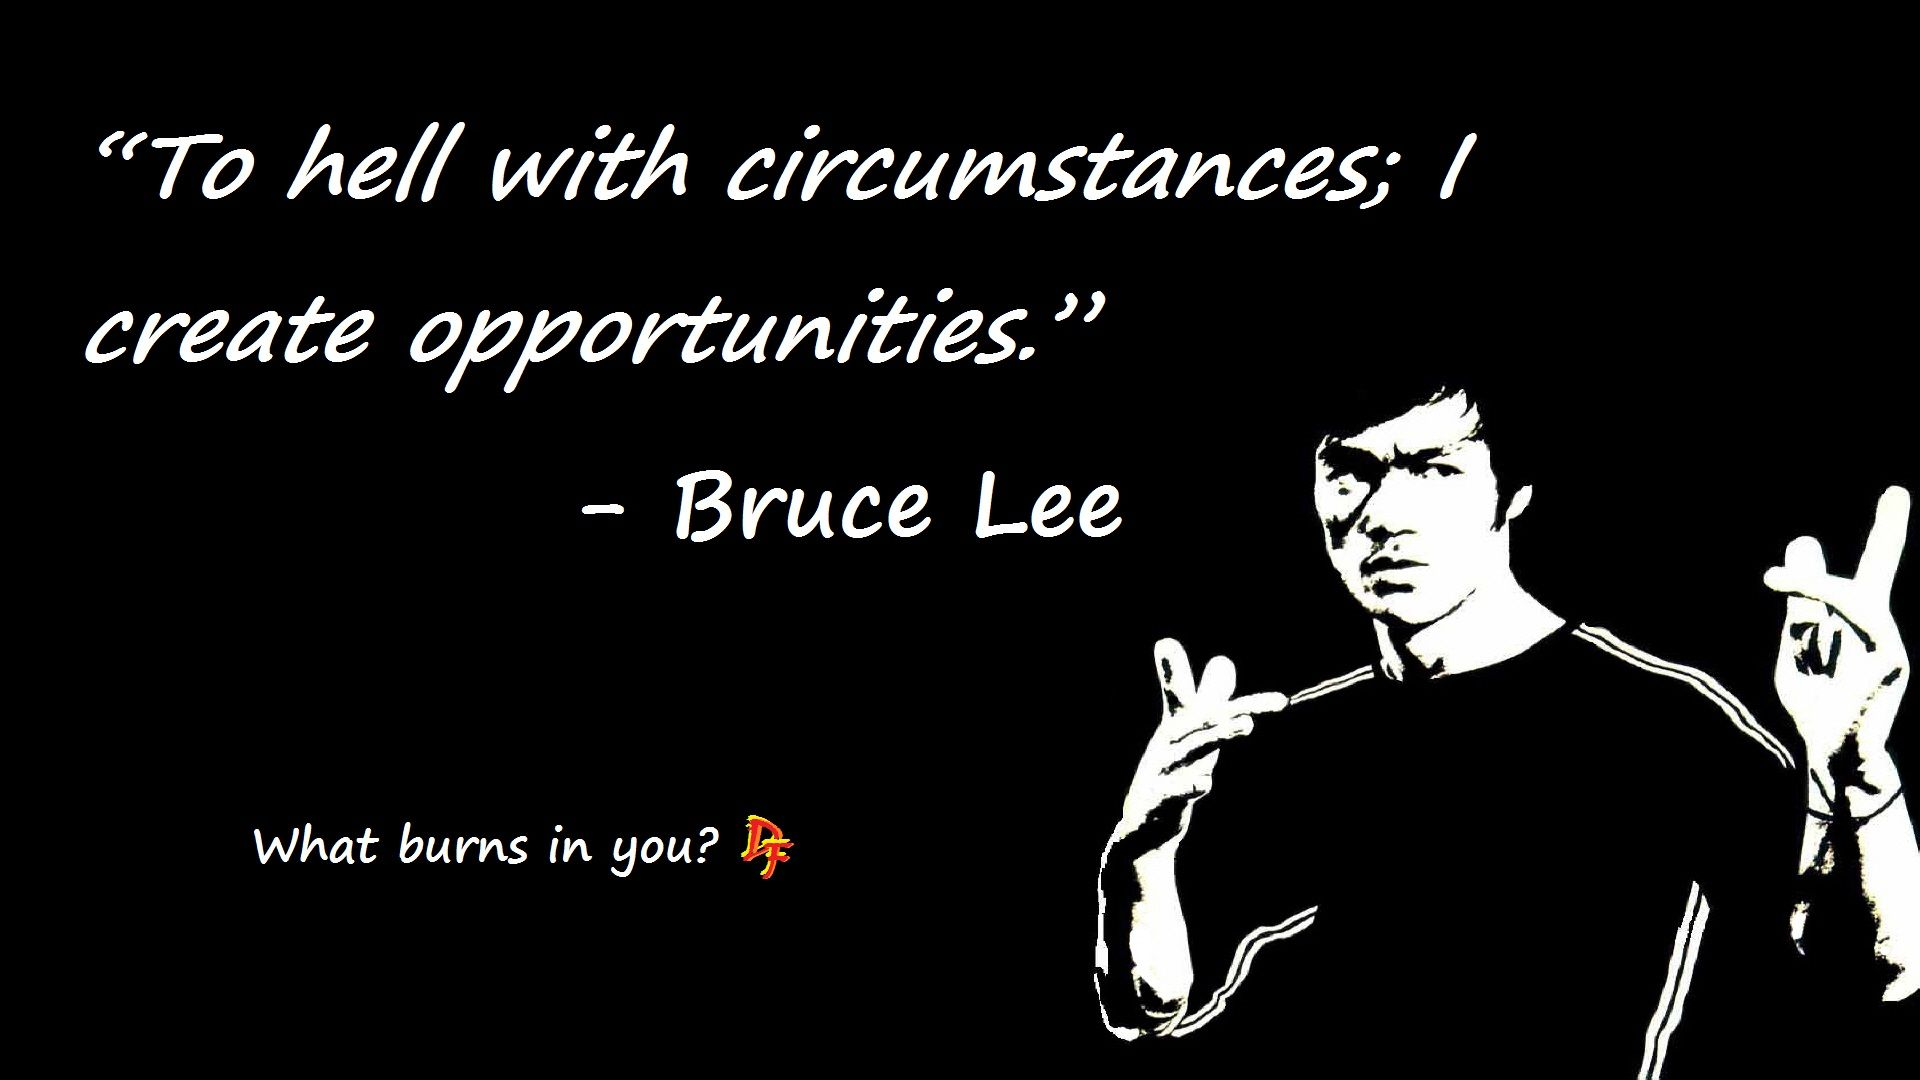 Bruce lee quote check out our cool martial arts inspired